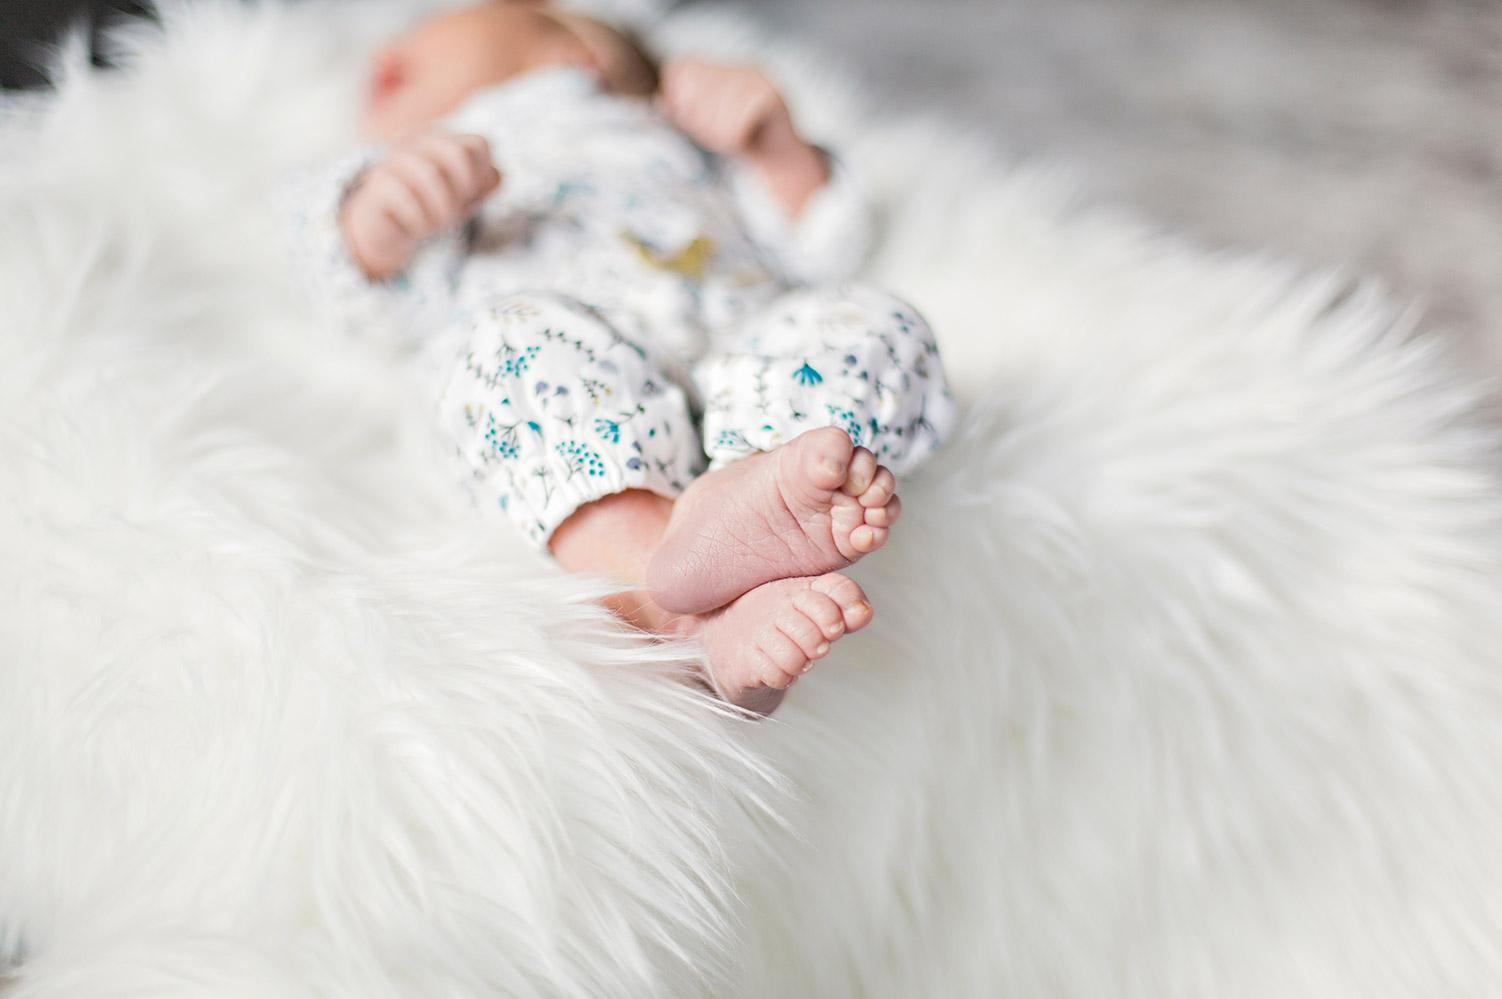 Newborn baby in floral onesie and white fluffy rug, what to know about newborn rashes